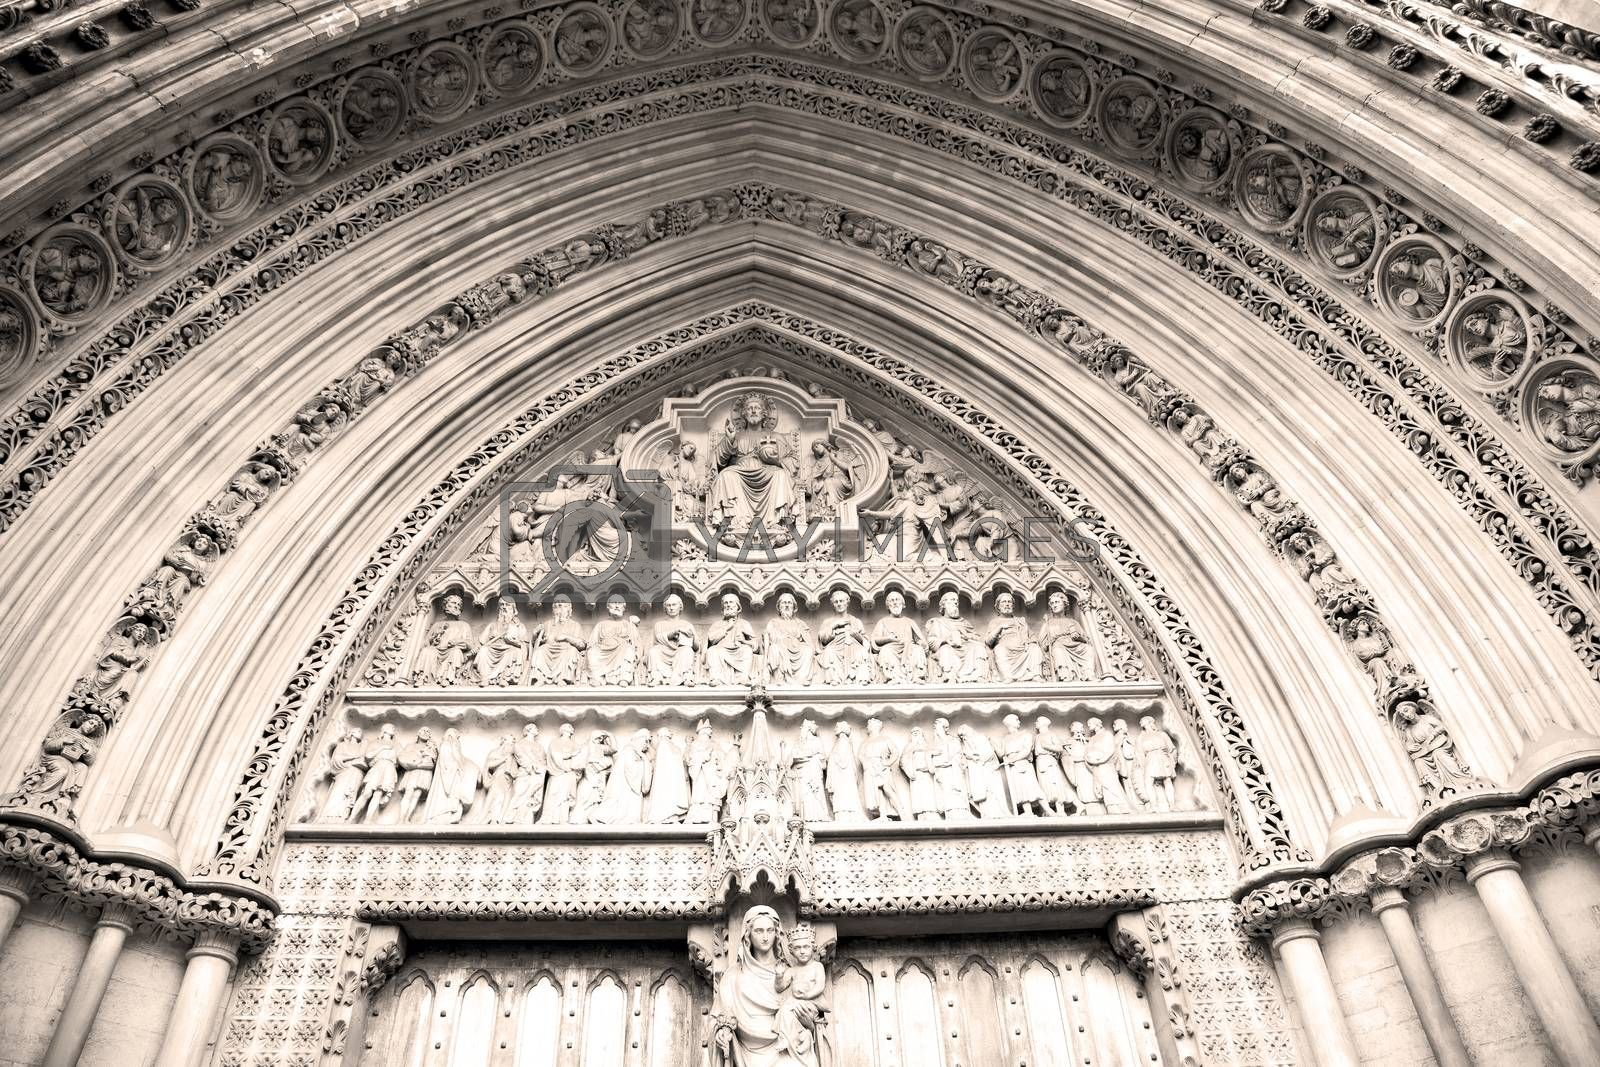 rose window weinstmister  abbey in london old church door and ma by lkpro